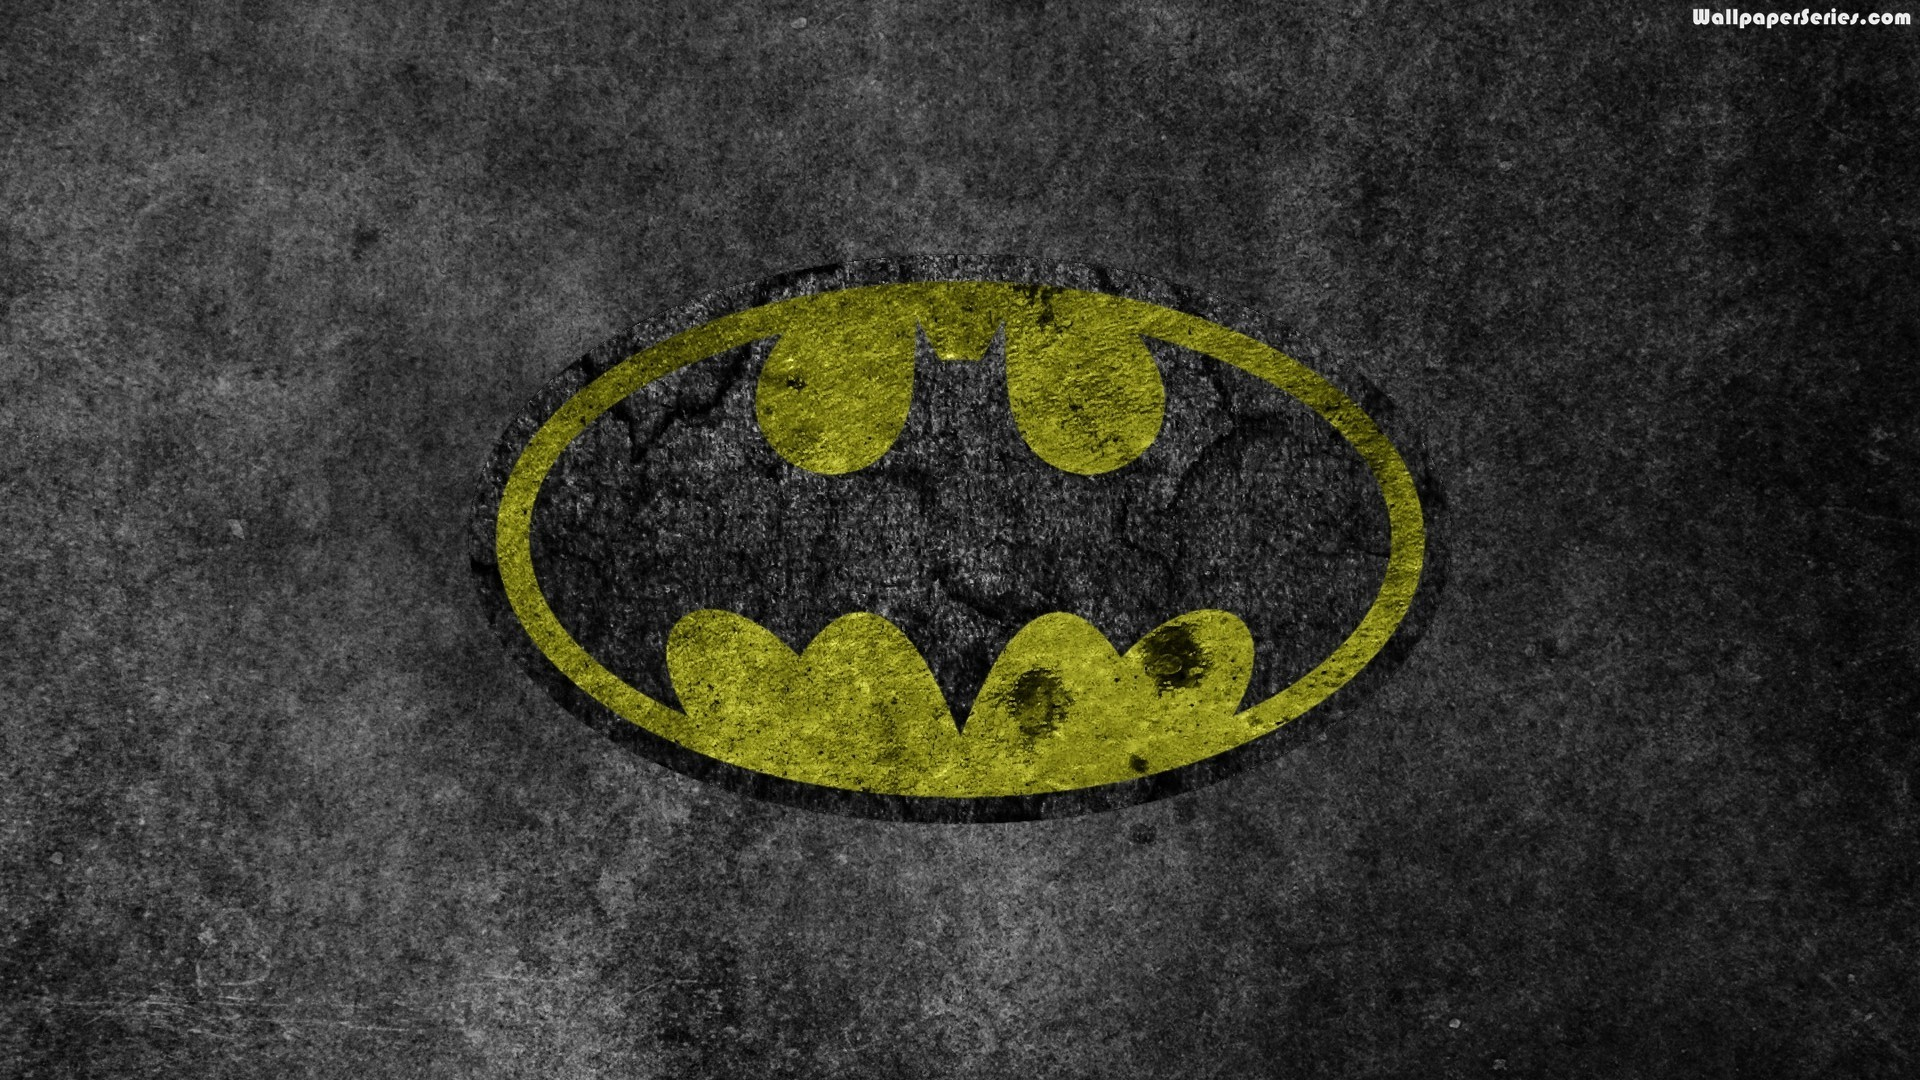 collection of batman wallpapers hd on hdwallpapers 1920a—1080